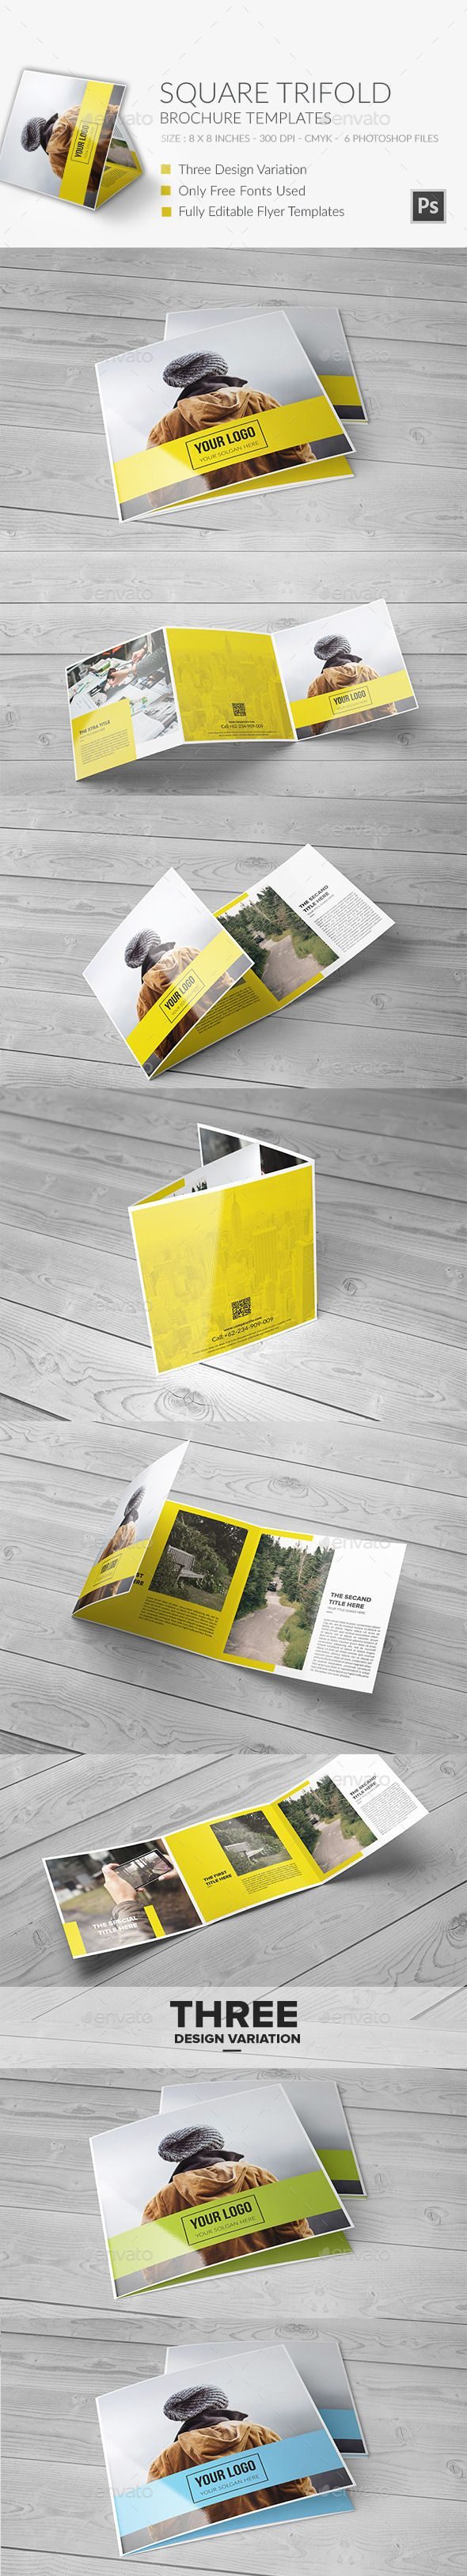 Square Trifold Brochure Template #design Download: http://graphicriver.net/item/square-trifold-brochure-2/12182021?ref=ksioks